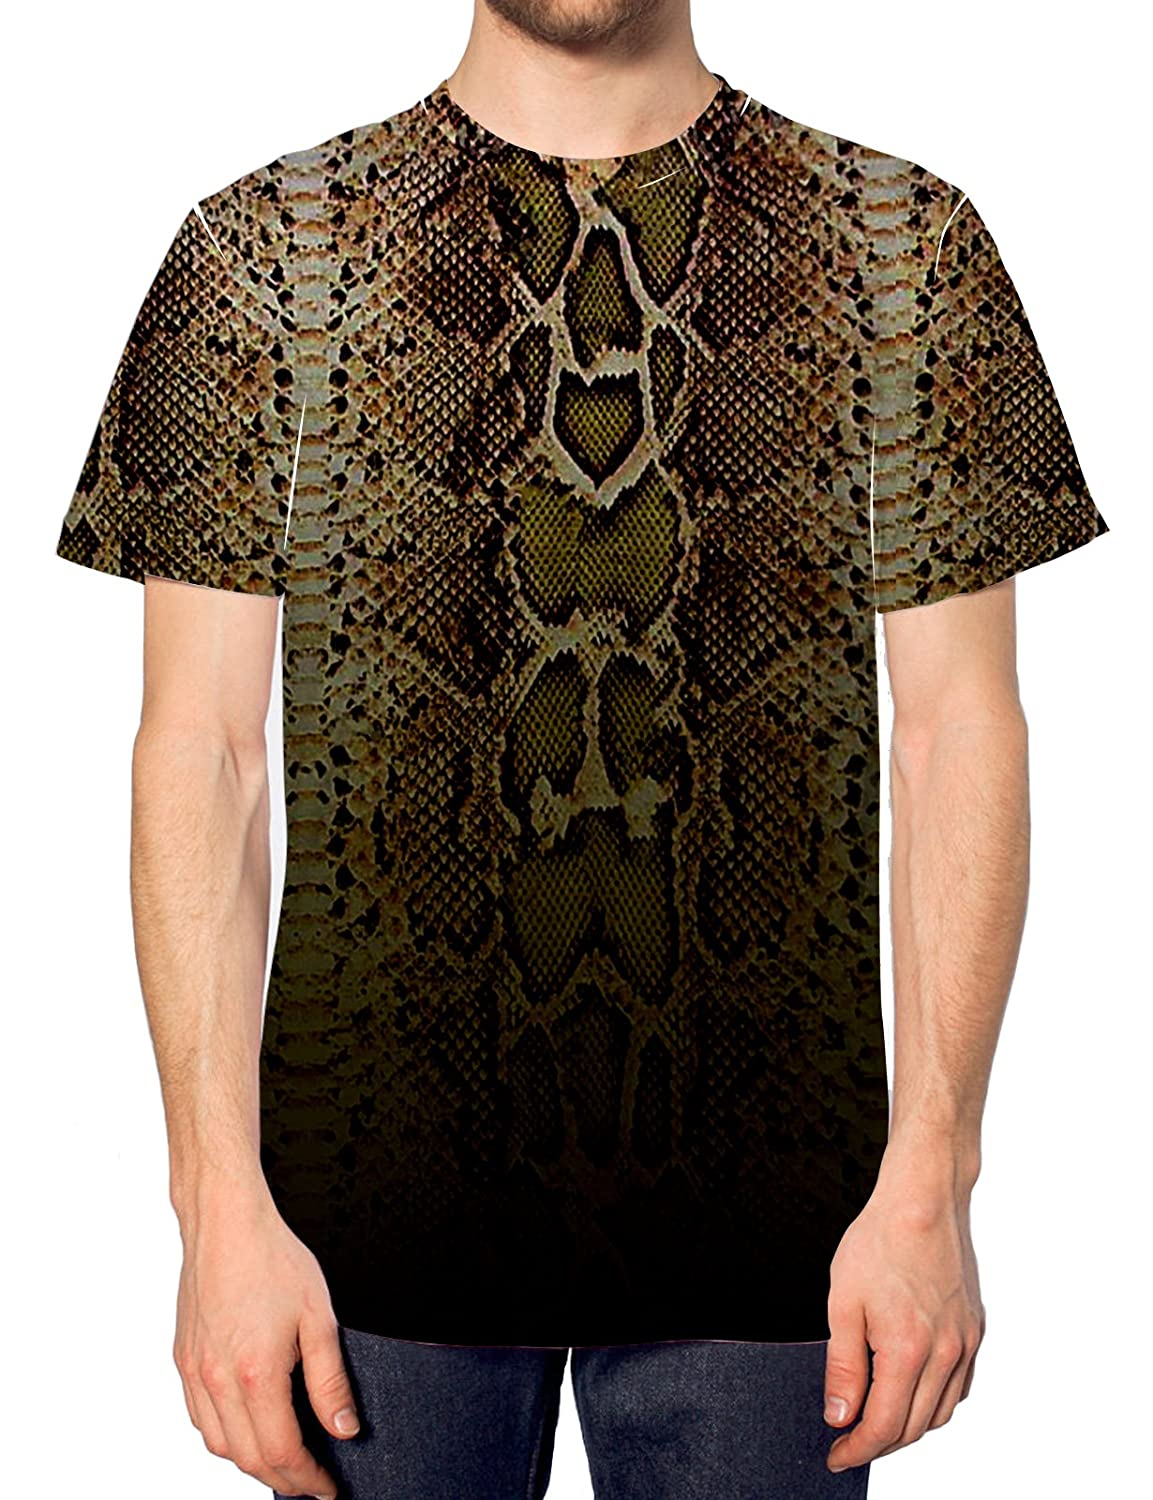 1d0cdf80 Snake All Over Print T shirt Lad Mens Top Swag Indie Animal Print Lizard  Ombre: Amazon.co.uk: Clothing